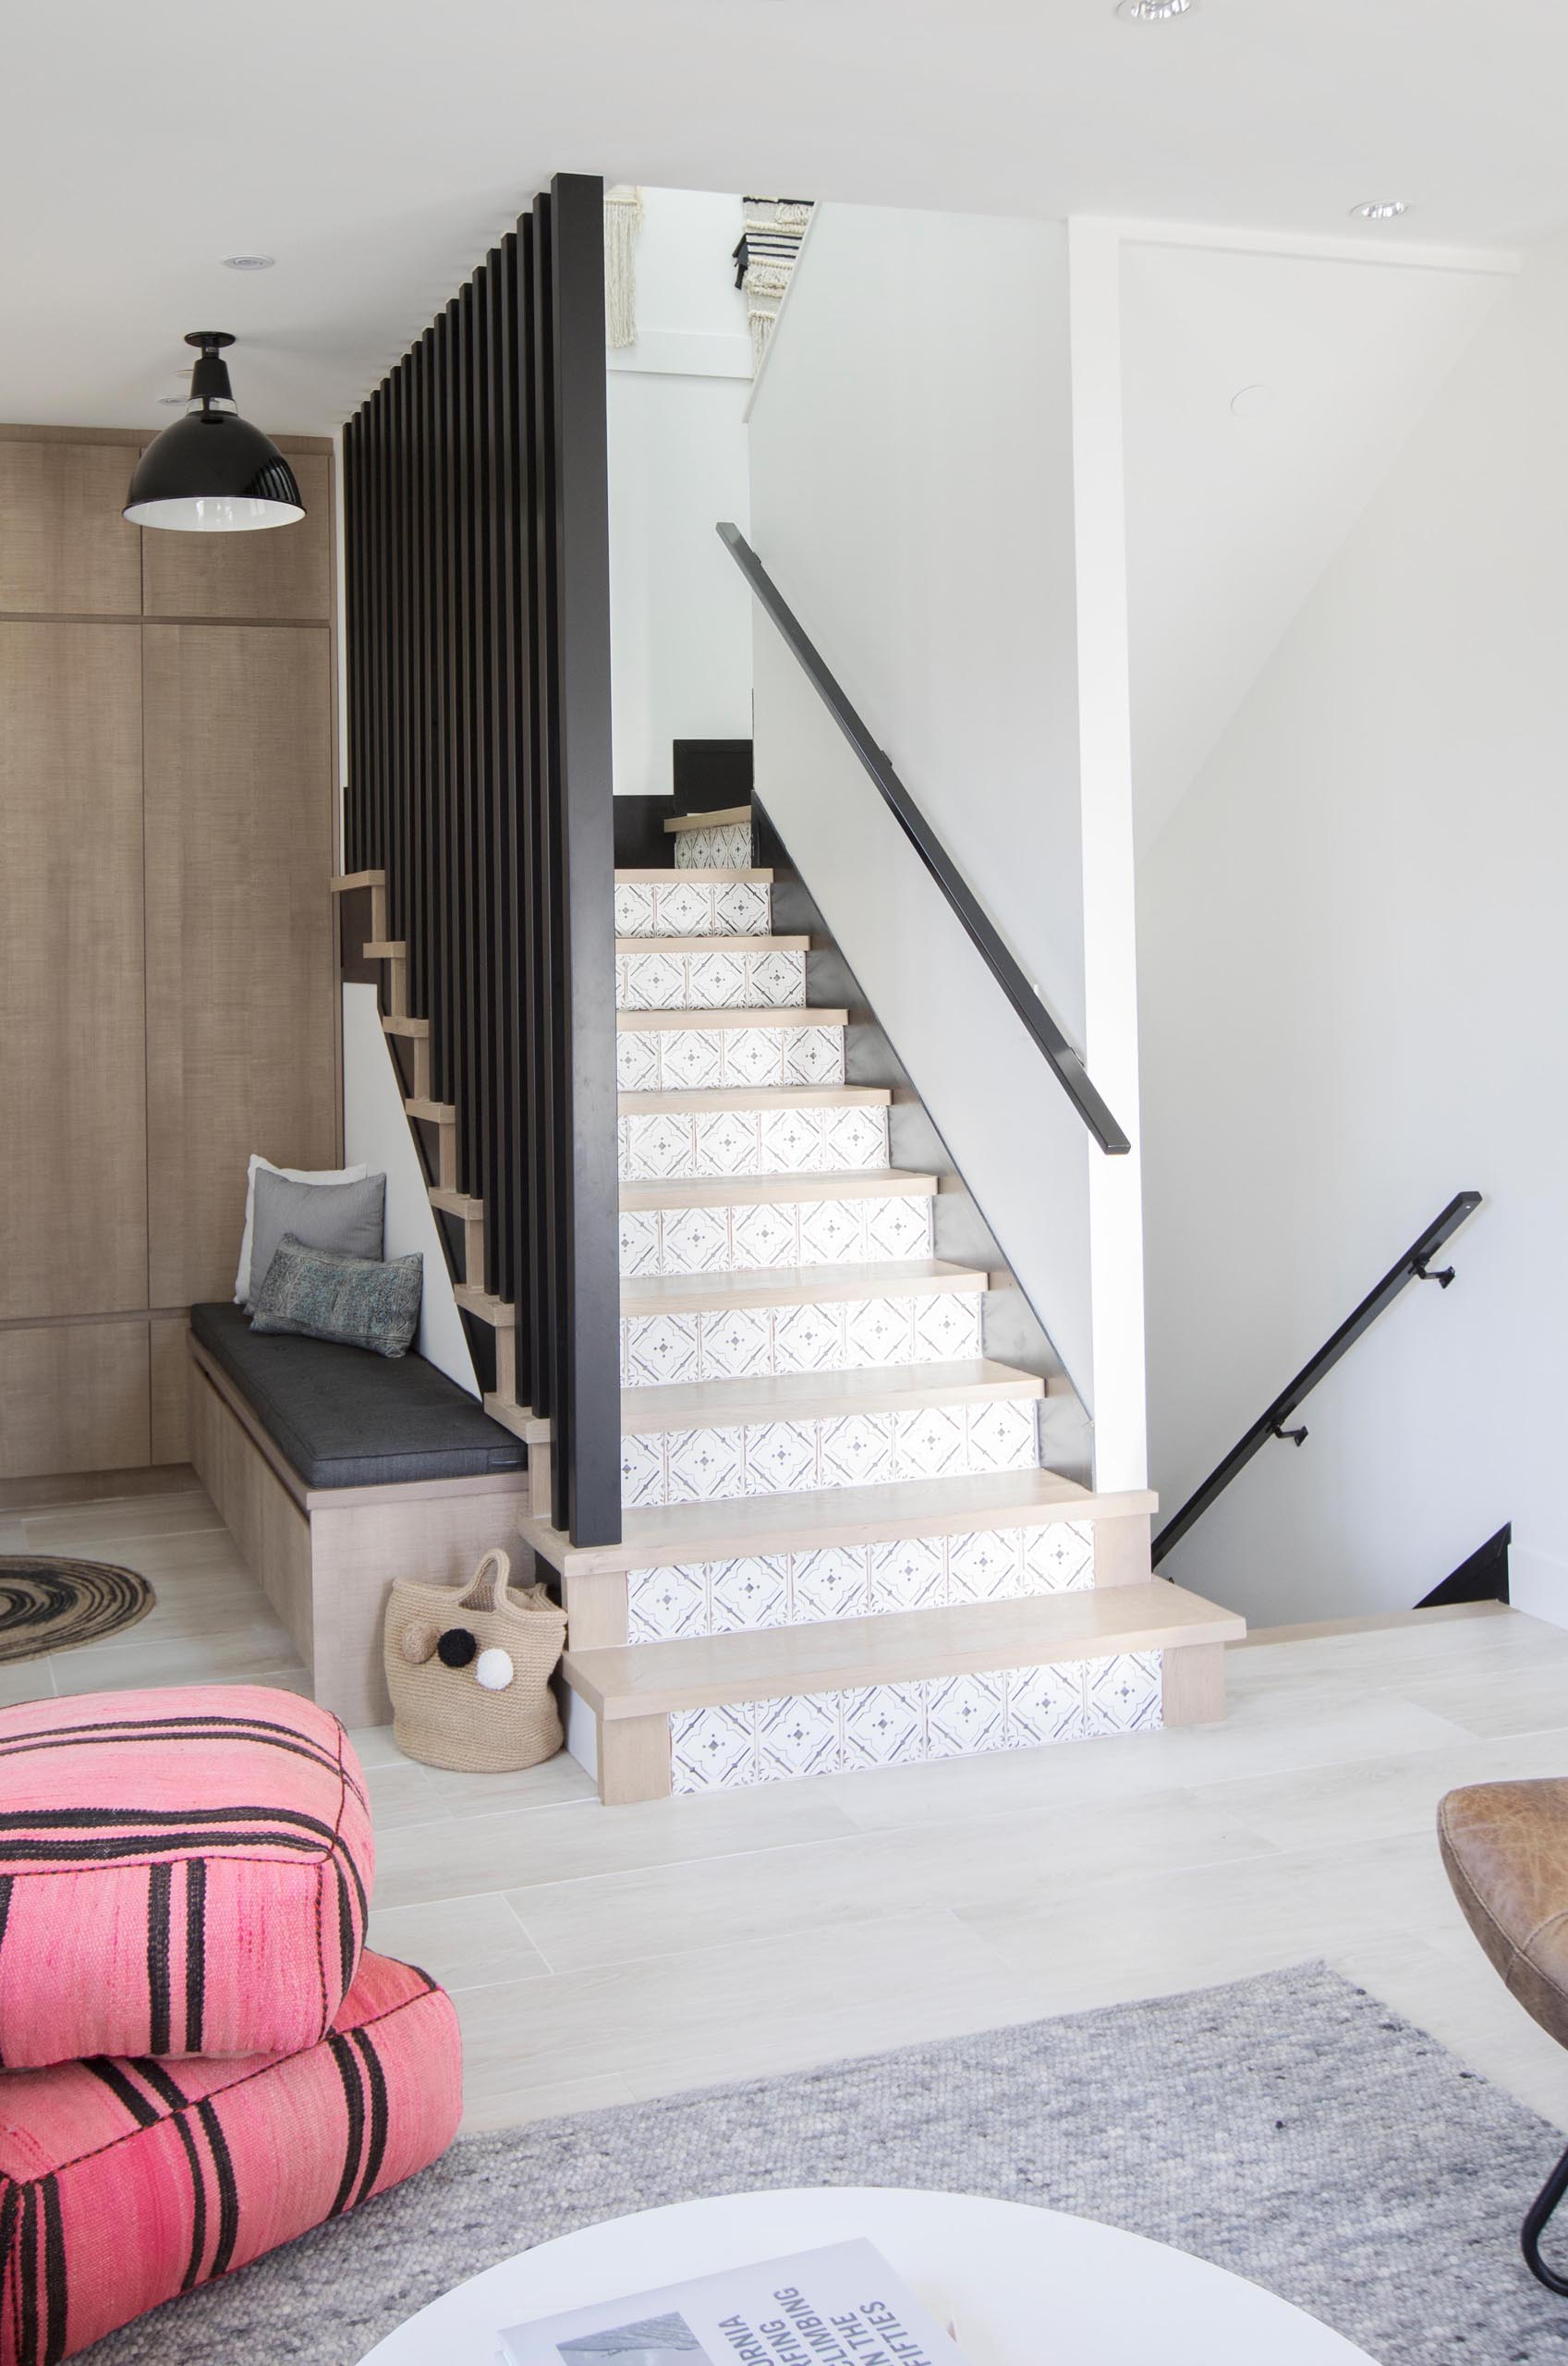 These modern stairs have a delicate pattern that's shown on the risers, while the black handrails complement other black accents throughout the home.